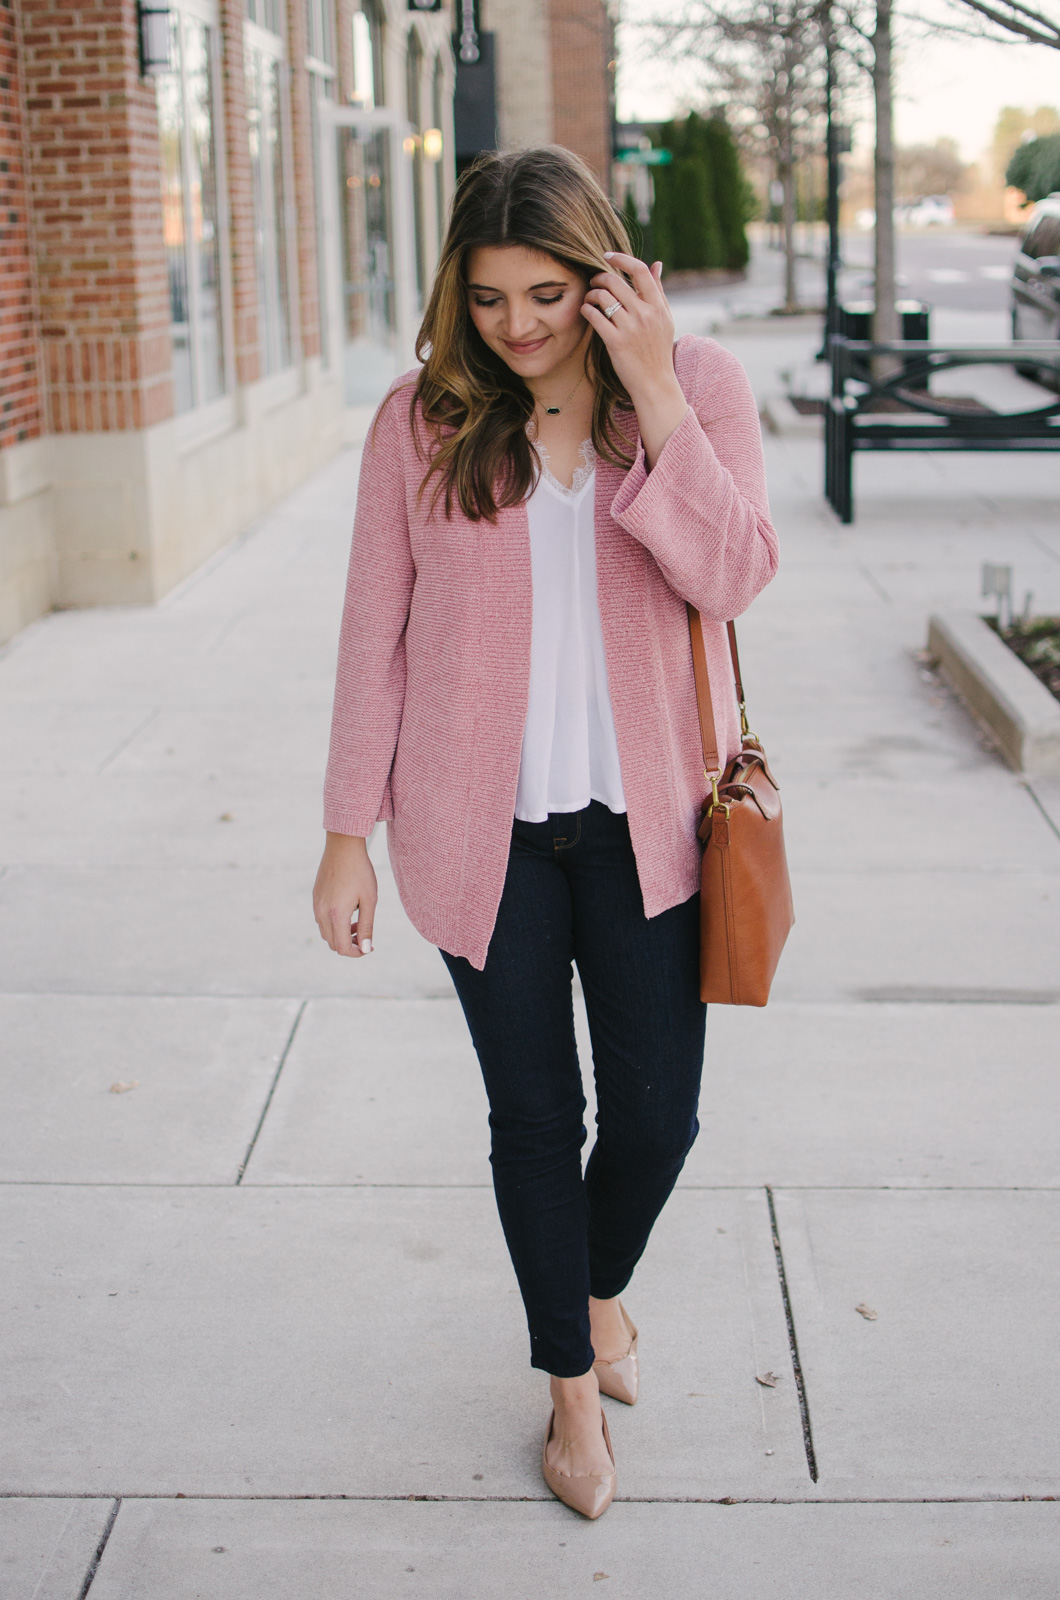 Tips For Early Spring Outfits By Lauren M